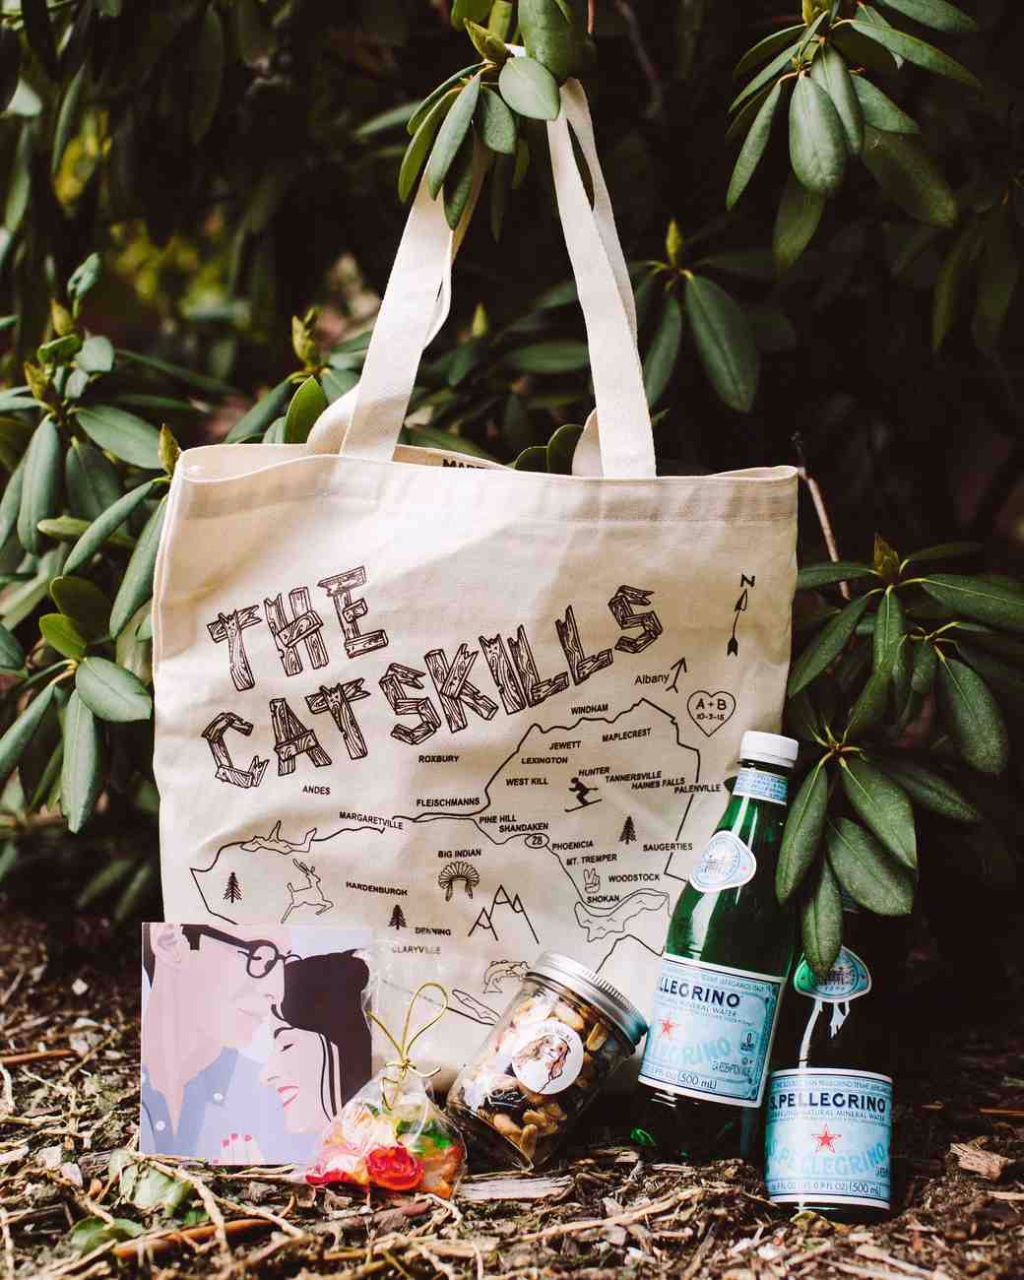 Greet your quests with a grocery tote filled with you and your partners favorite treats. These gift bags make for unique hotel welcome